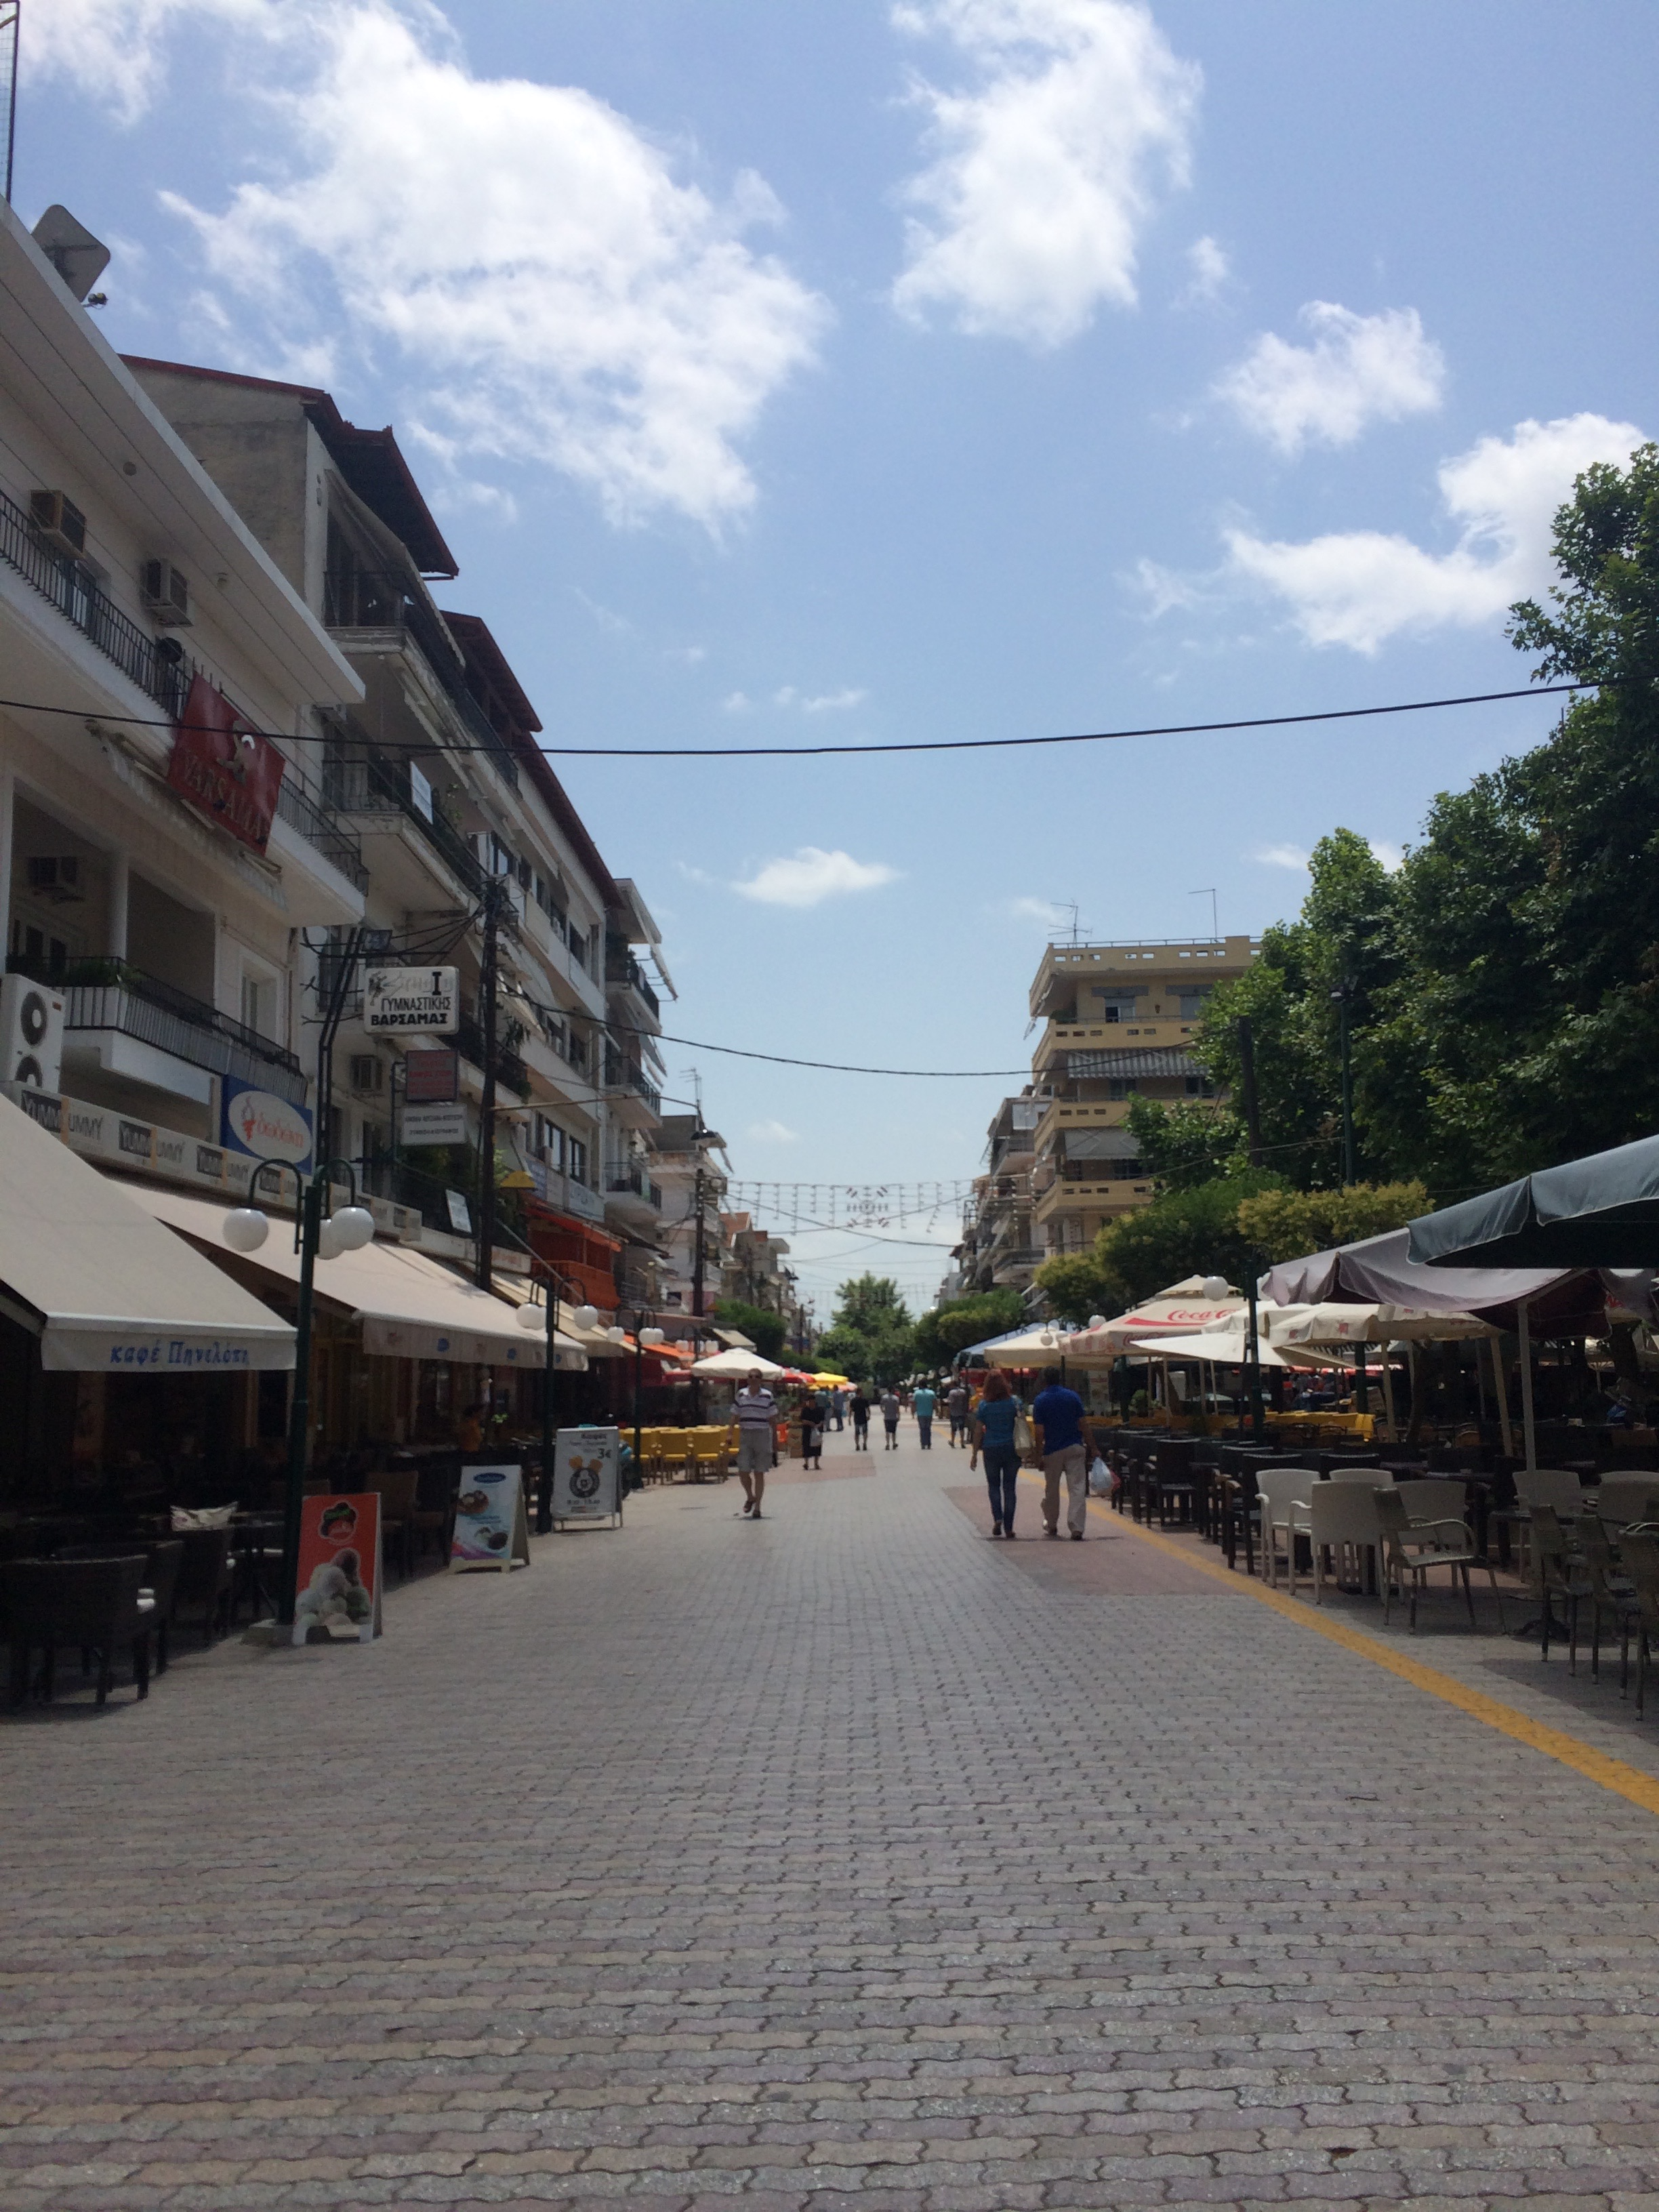 The main pedestrian street or to say in greek, (pes-oh-thromo) the road of people, is off limits to cars and offers a day or night stroll by many shops, cafes, restaurants and lounges for people pf all ages. It is the heart of the entertainment area here.